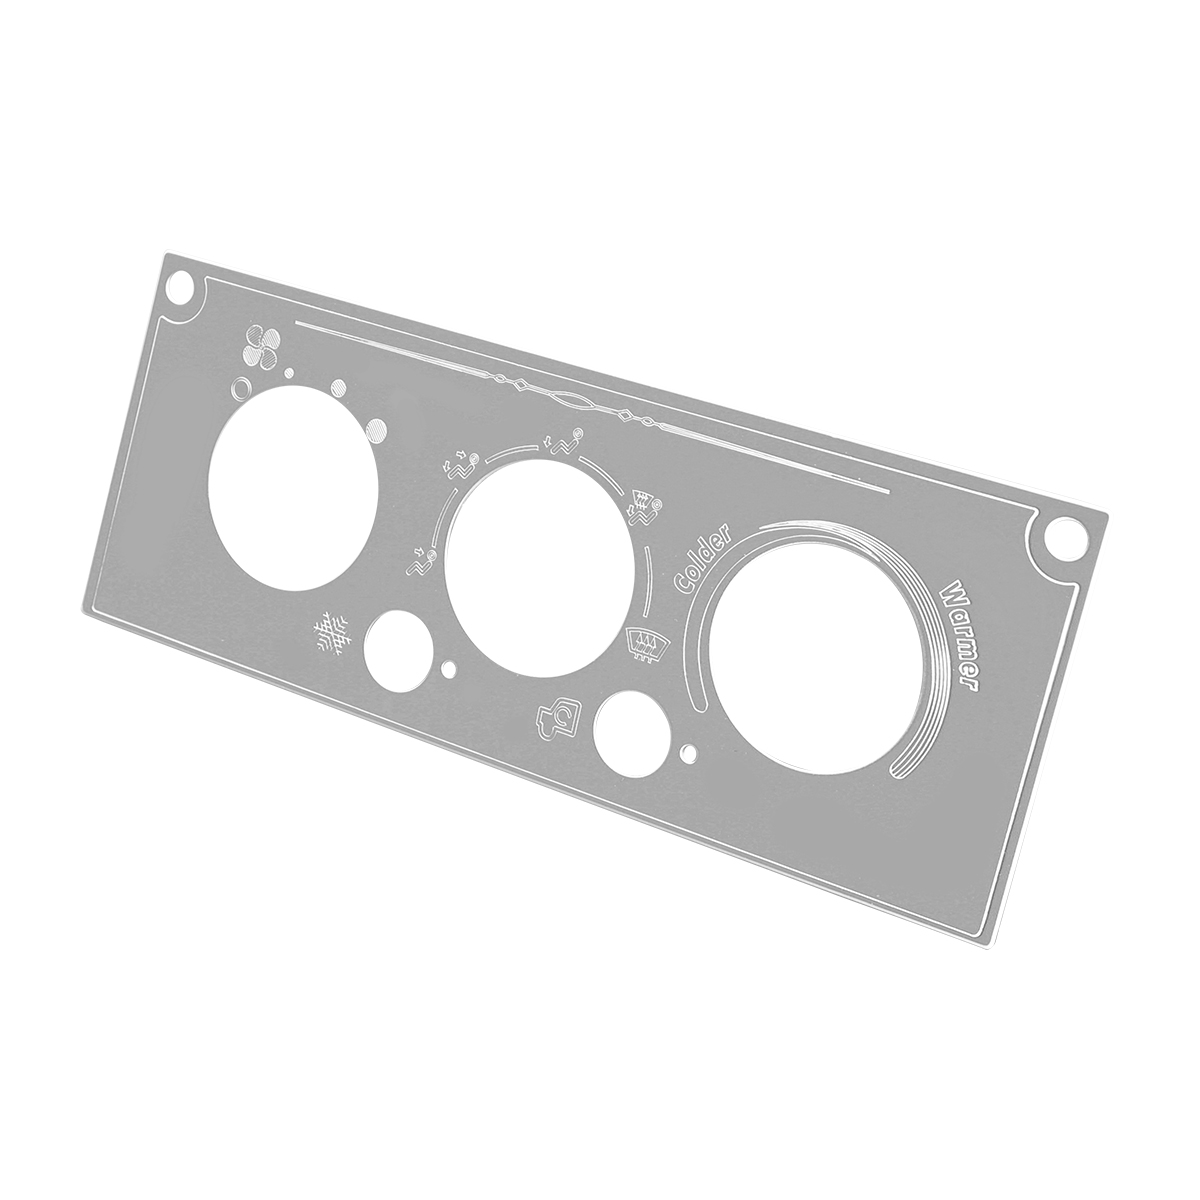 68733 Stainless Steel A/C Control Plate for Kenworth W&T